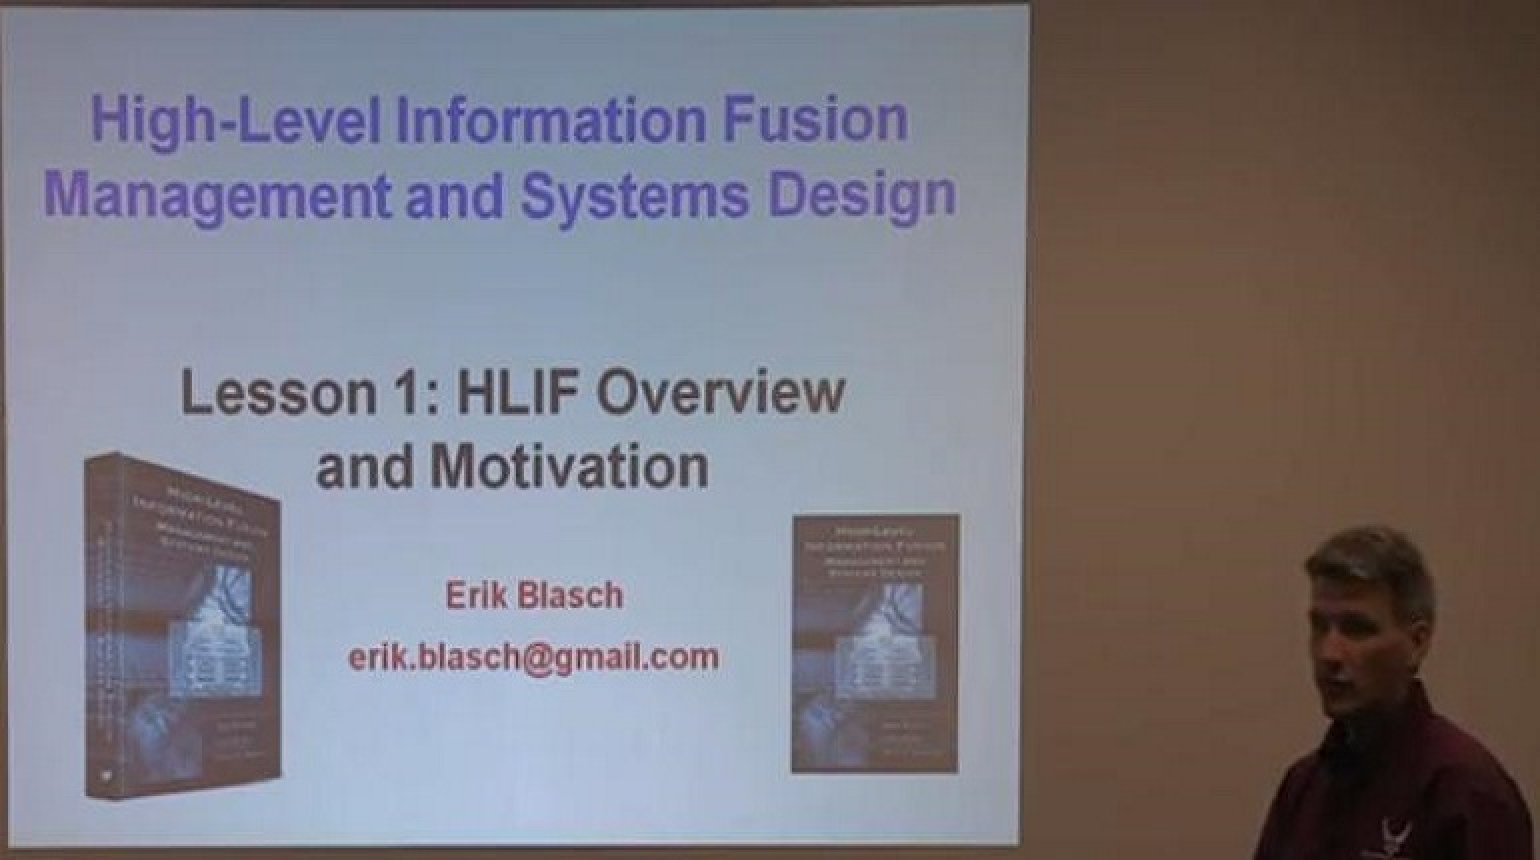 High Level Information Fusion Management and Systems Design Lesson 1